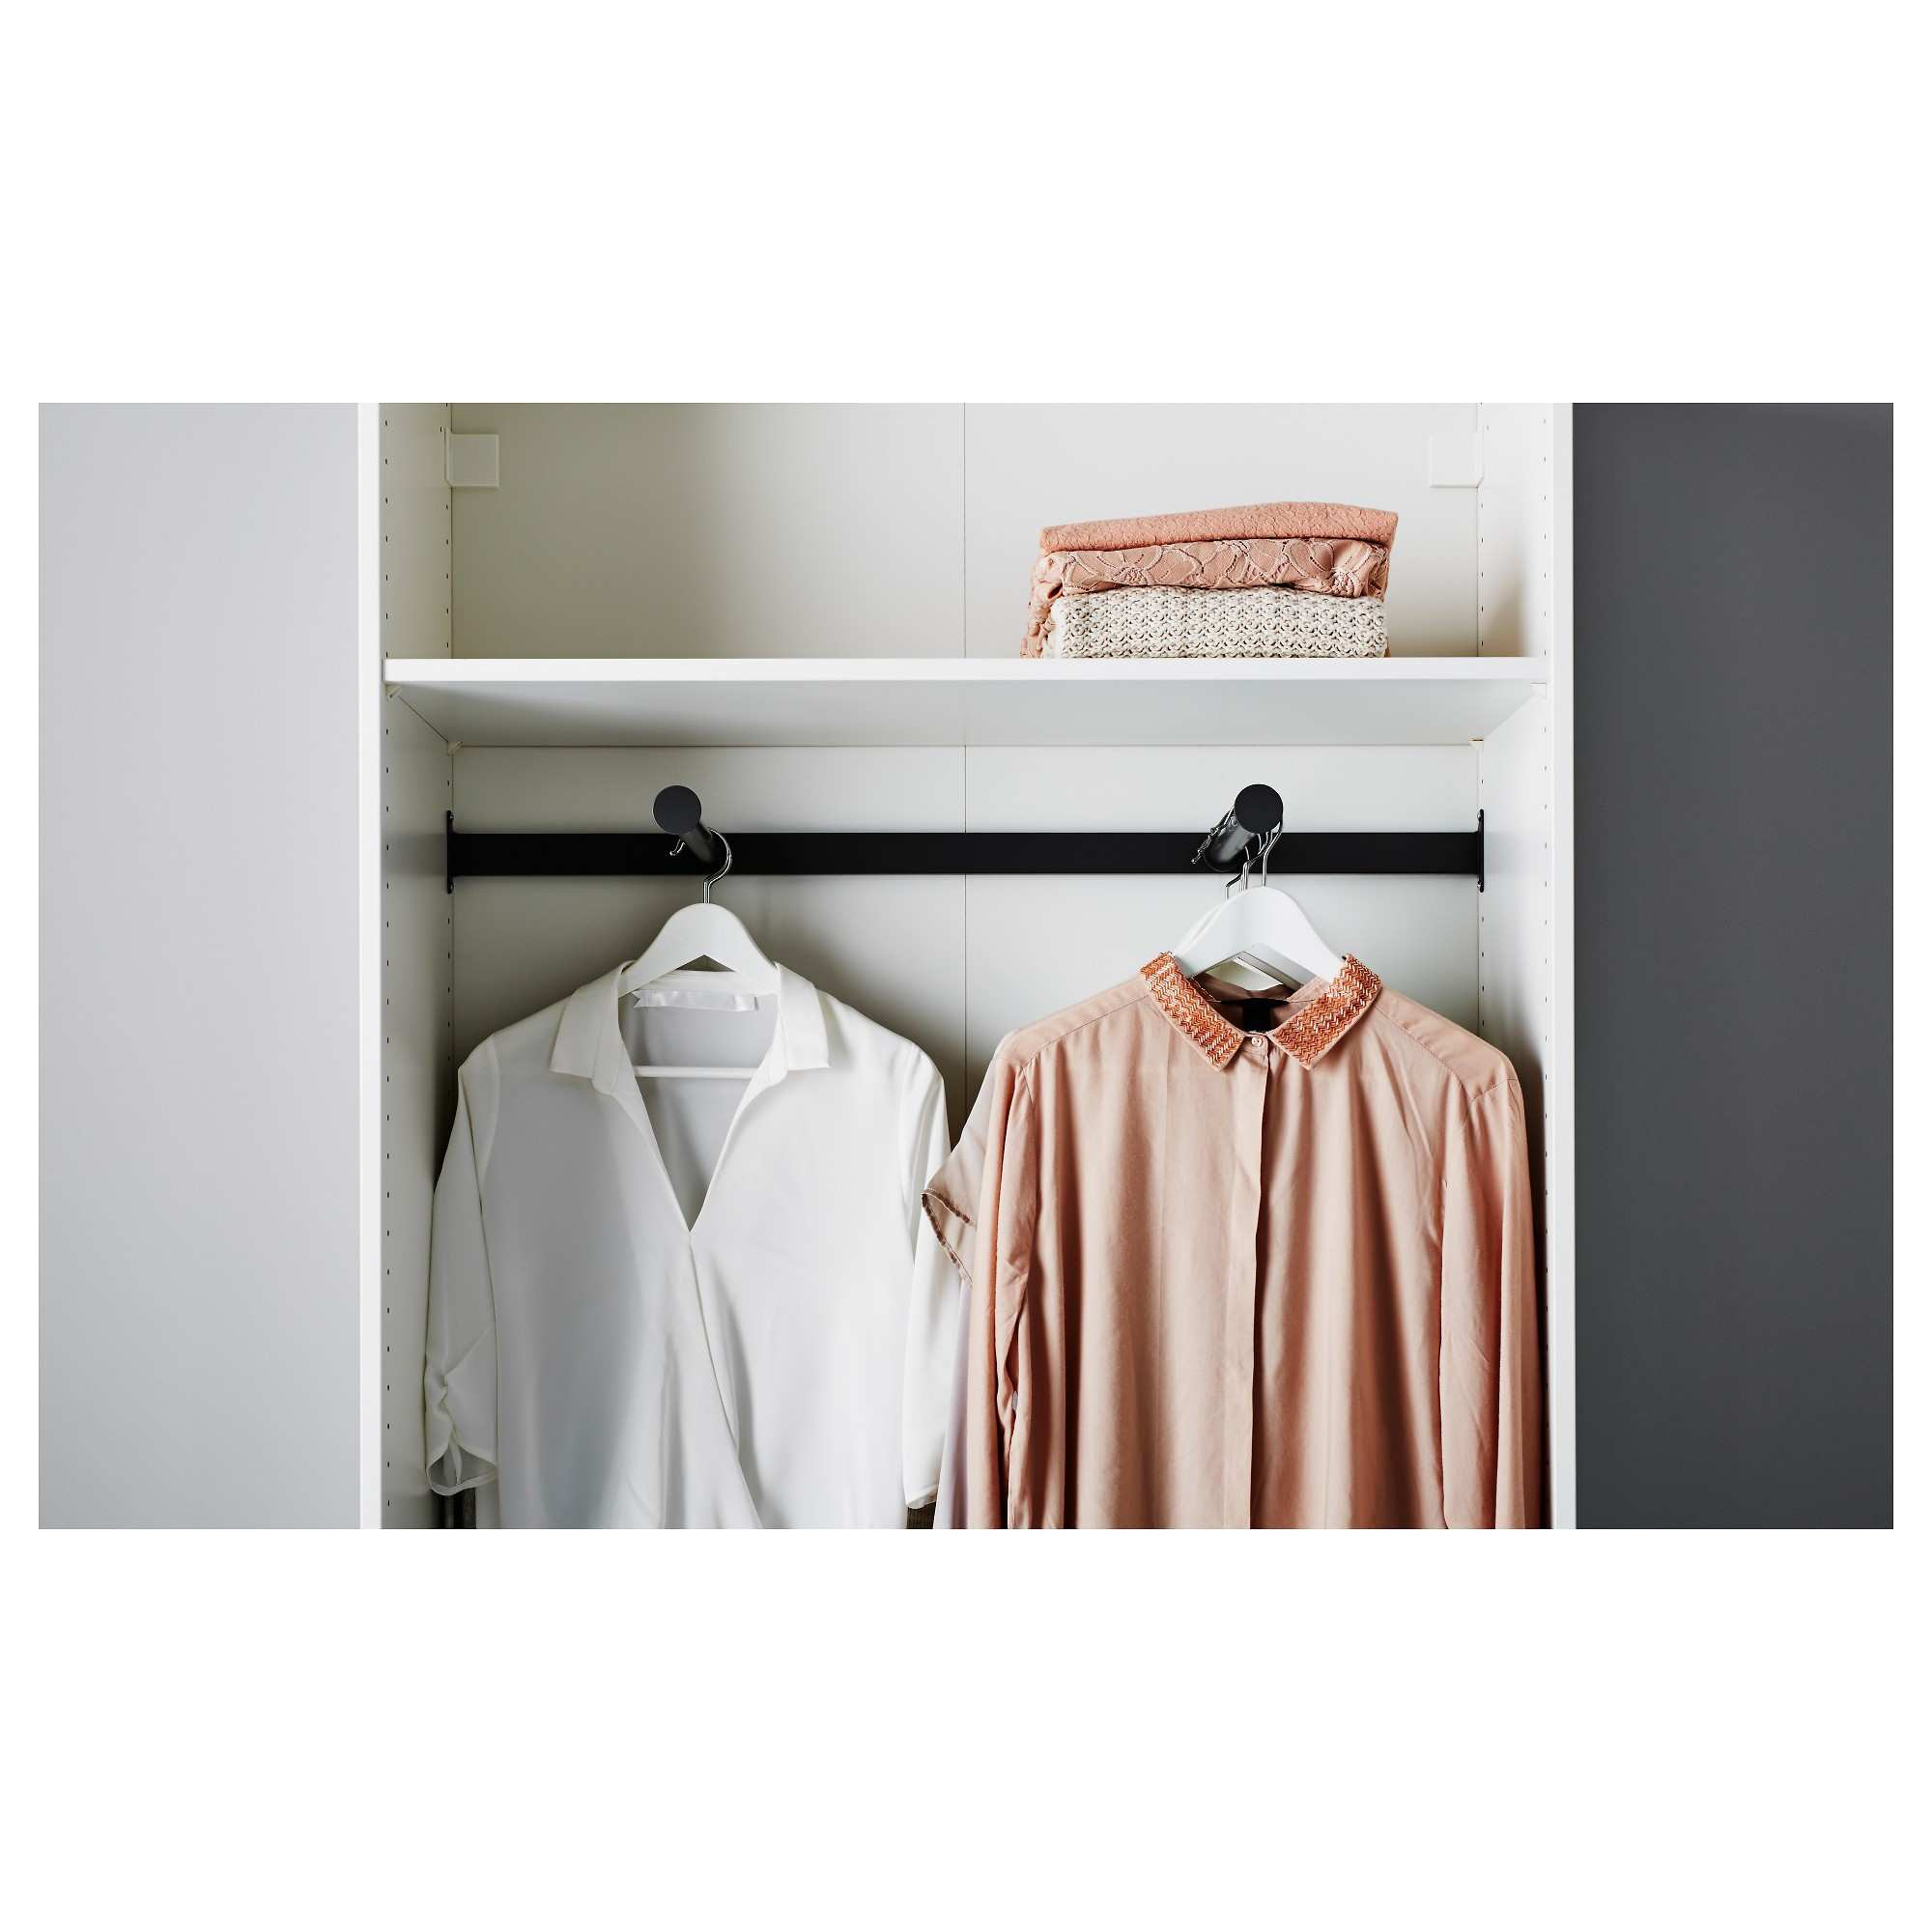 86y Wardrobe Ikea Pax Rail Double With Two Hanging Railsi 0d Wall